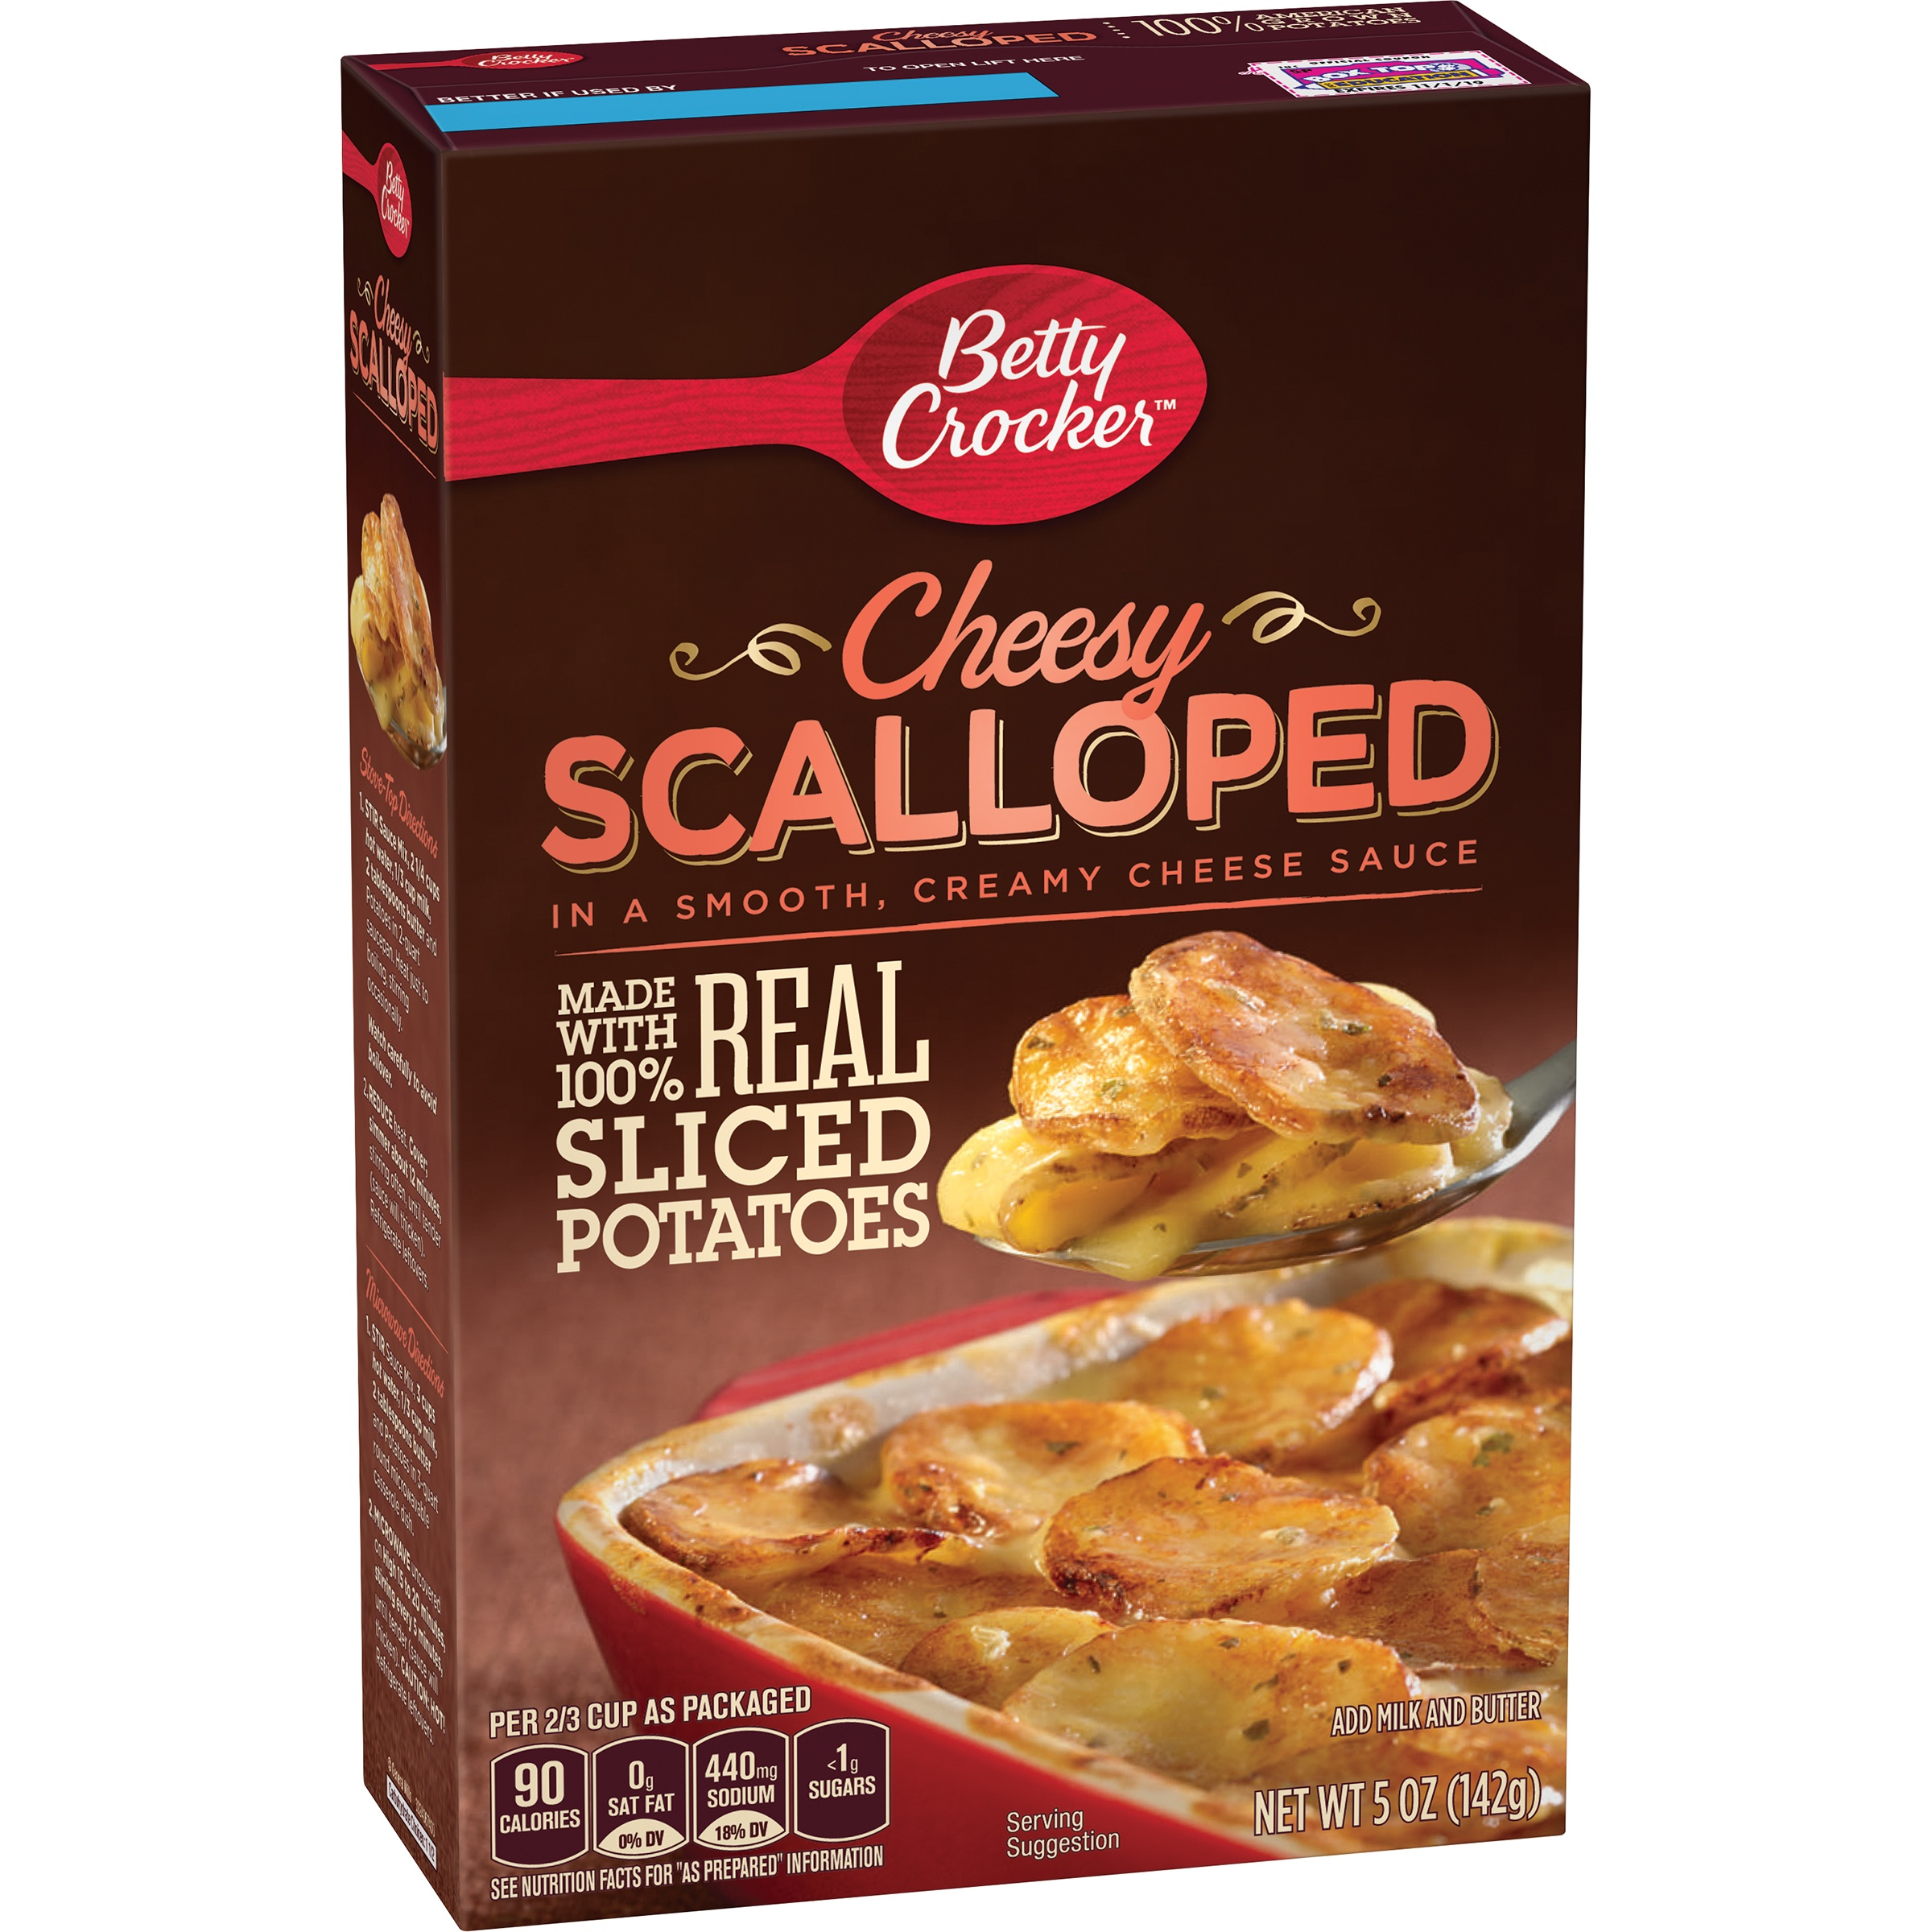 Betty Crocker Real Sliced Potatoes Cheesy Scalloped, 5.0 OZ by General Mills Sales, Inc.